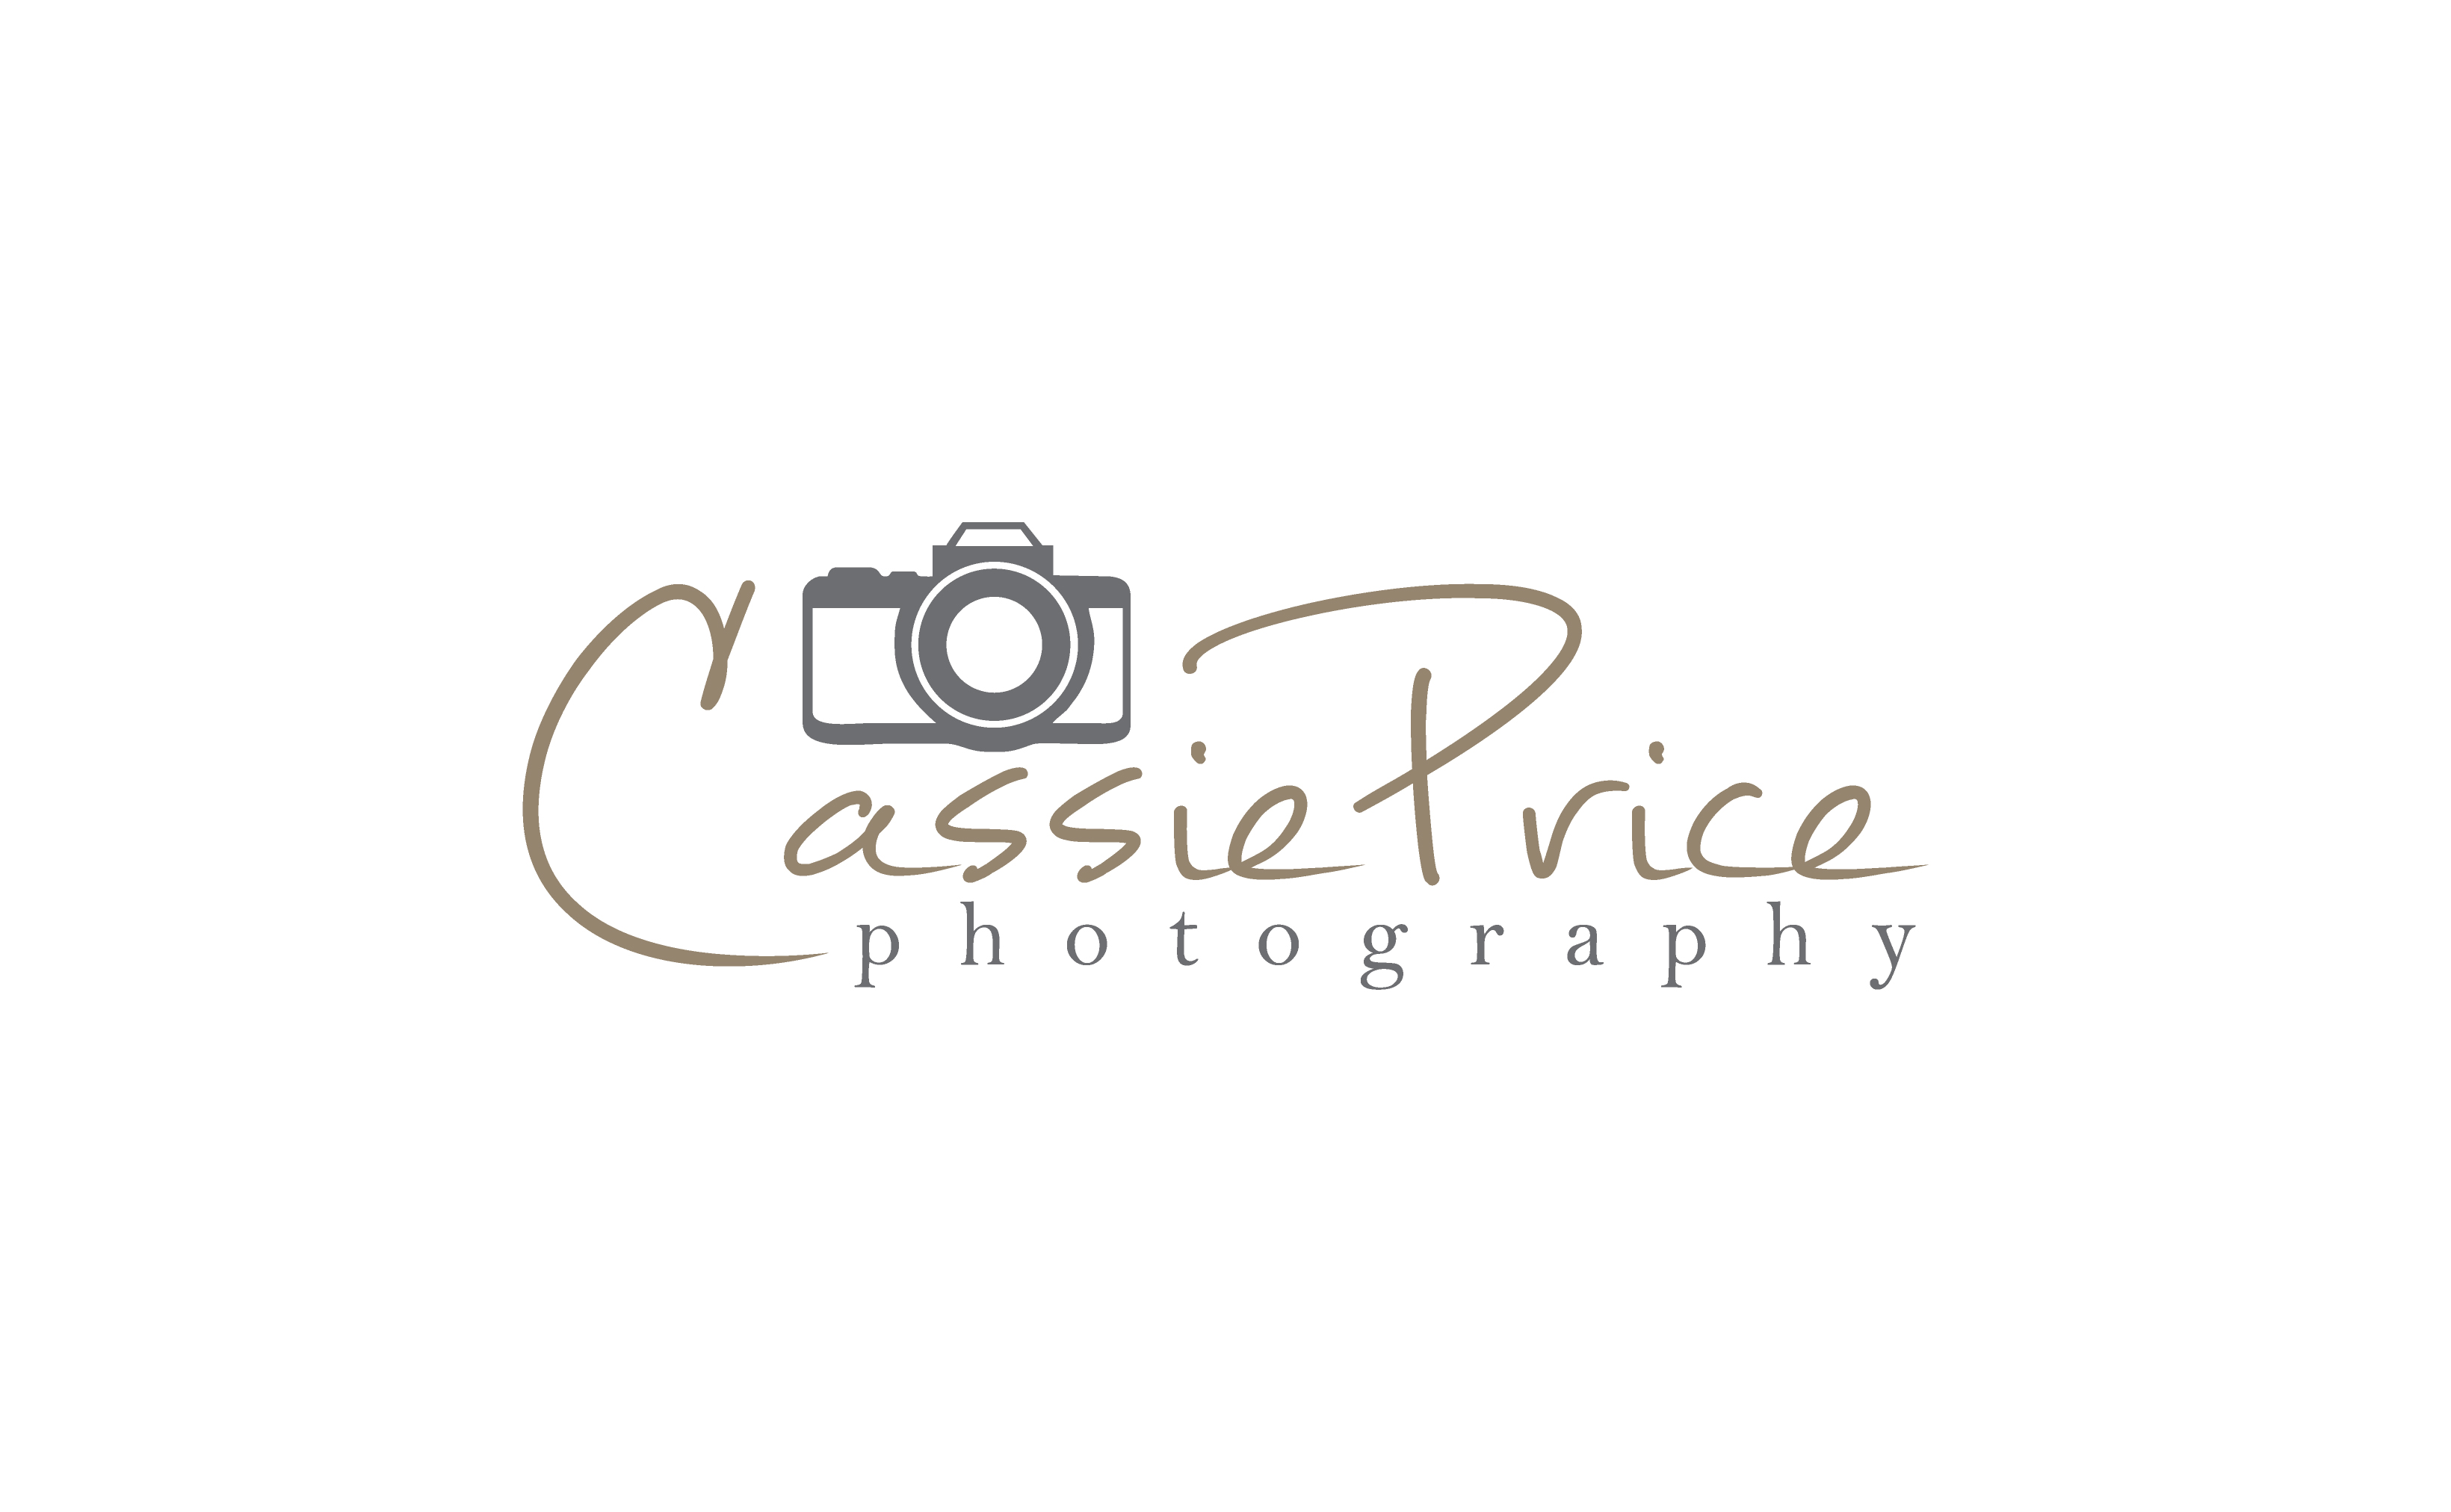 Cassie Price Photography